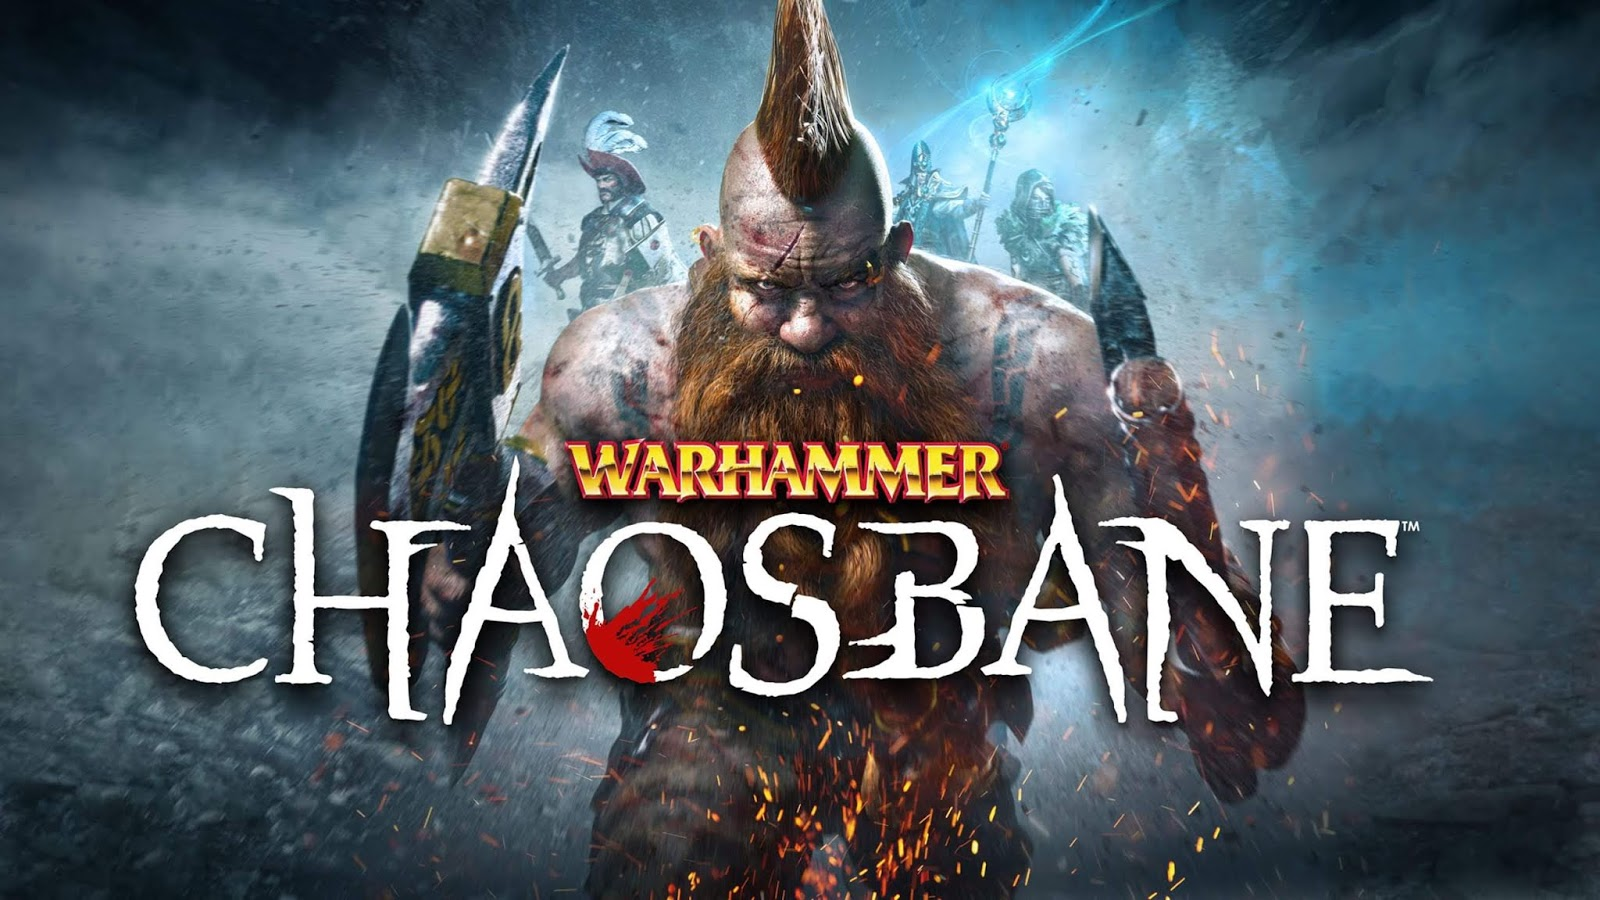 warhammer-chaosbane-tower-of-chaos-online-multiplayer